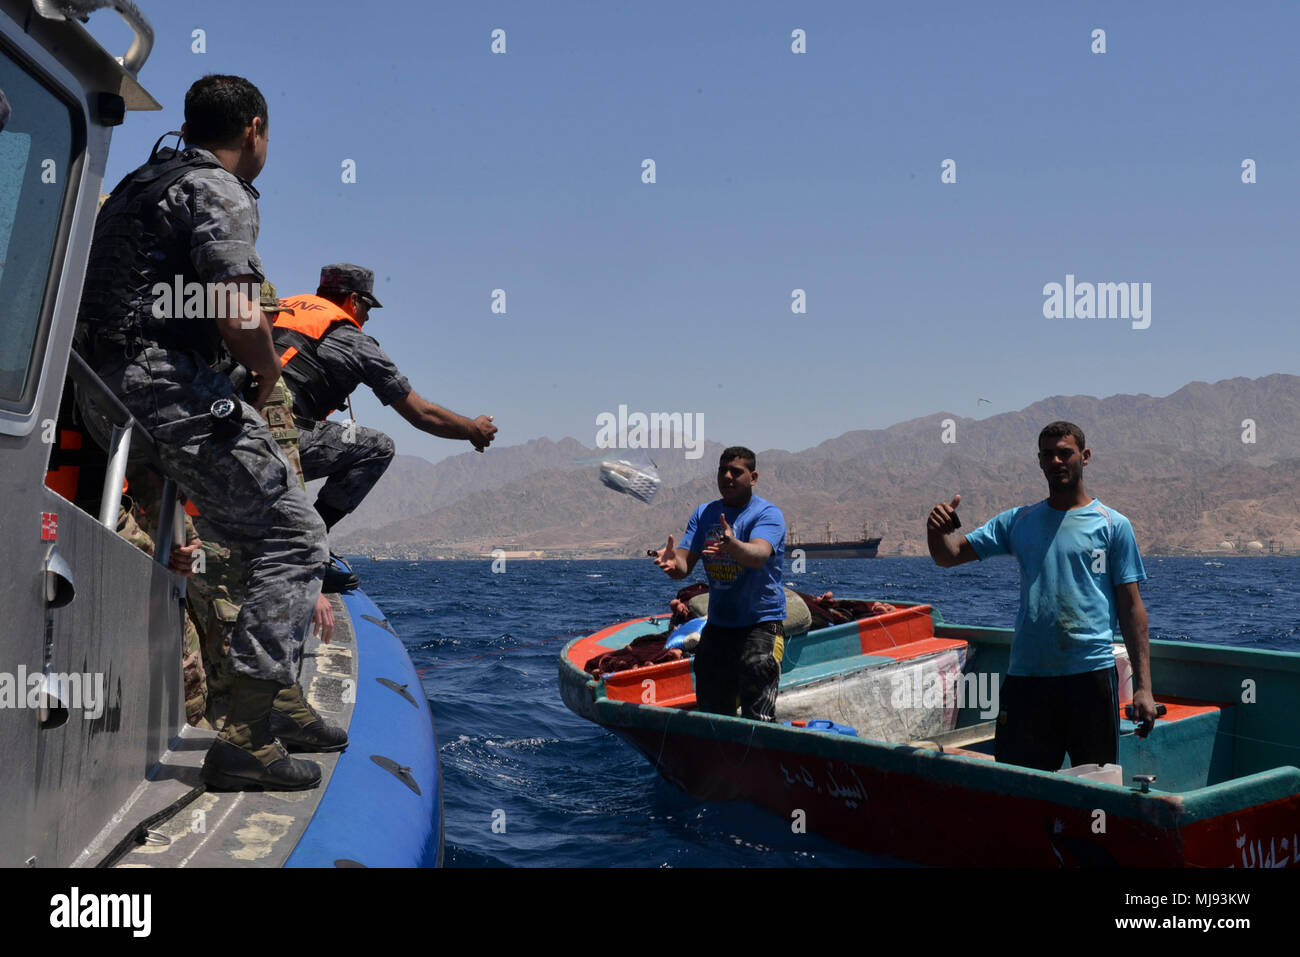 AQABA, Jordan (April 23, 2018) --  Members of the Royal Jordanian Navy Combat Boats Group toss a medical supply kit to local Jordanian fishermen in a civilian outreach event with U.S. Army Civil Affairs during exercise Eager Lion, April 23, 2018.  Eager Lion is a capstone training engagement that provides U.S. forces and the Jordan Armed Forces an opportunity to rehearse operating in a coalition environment and to pursue new ways to collectively address threats to regional security and improve overall maritime security.  (U.S. Navy photo by Mass Communication Specialist 1st Class Sandi Grimnes Stock Photo